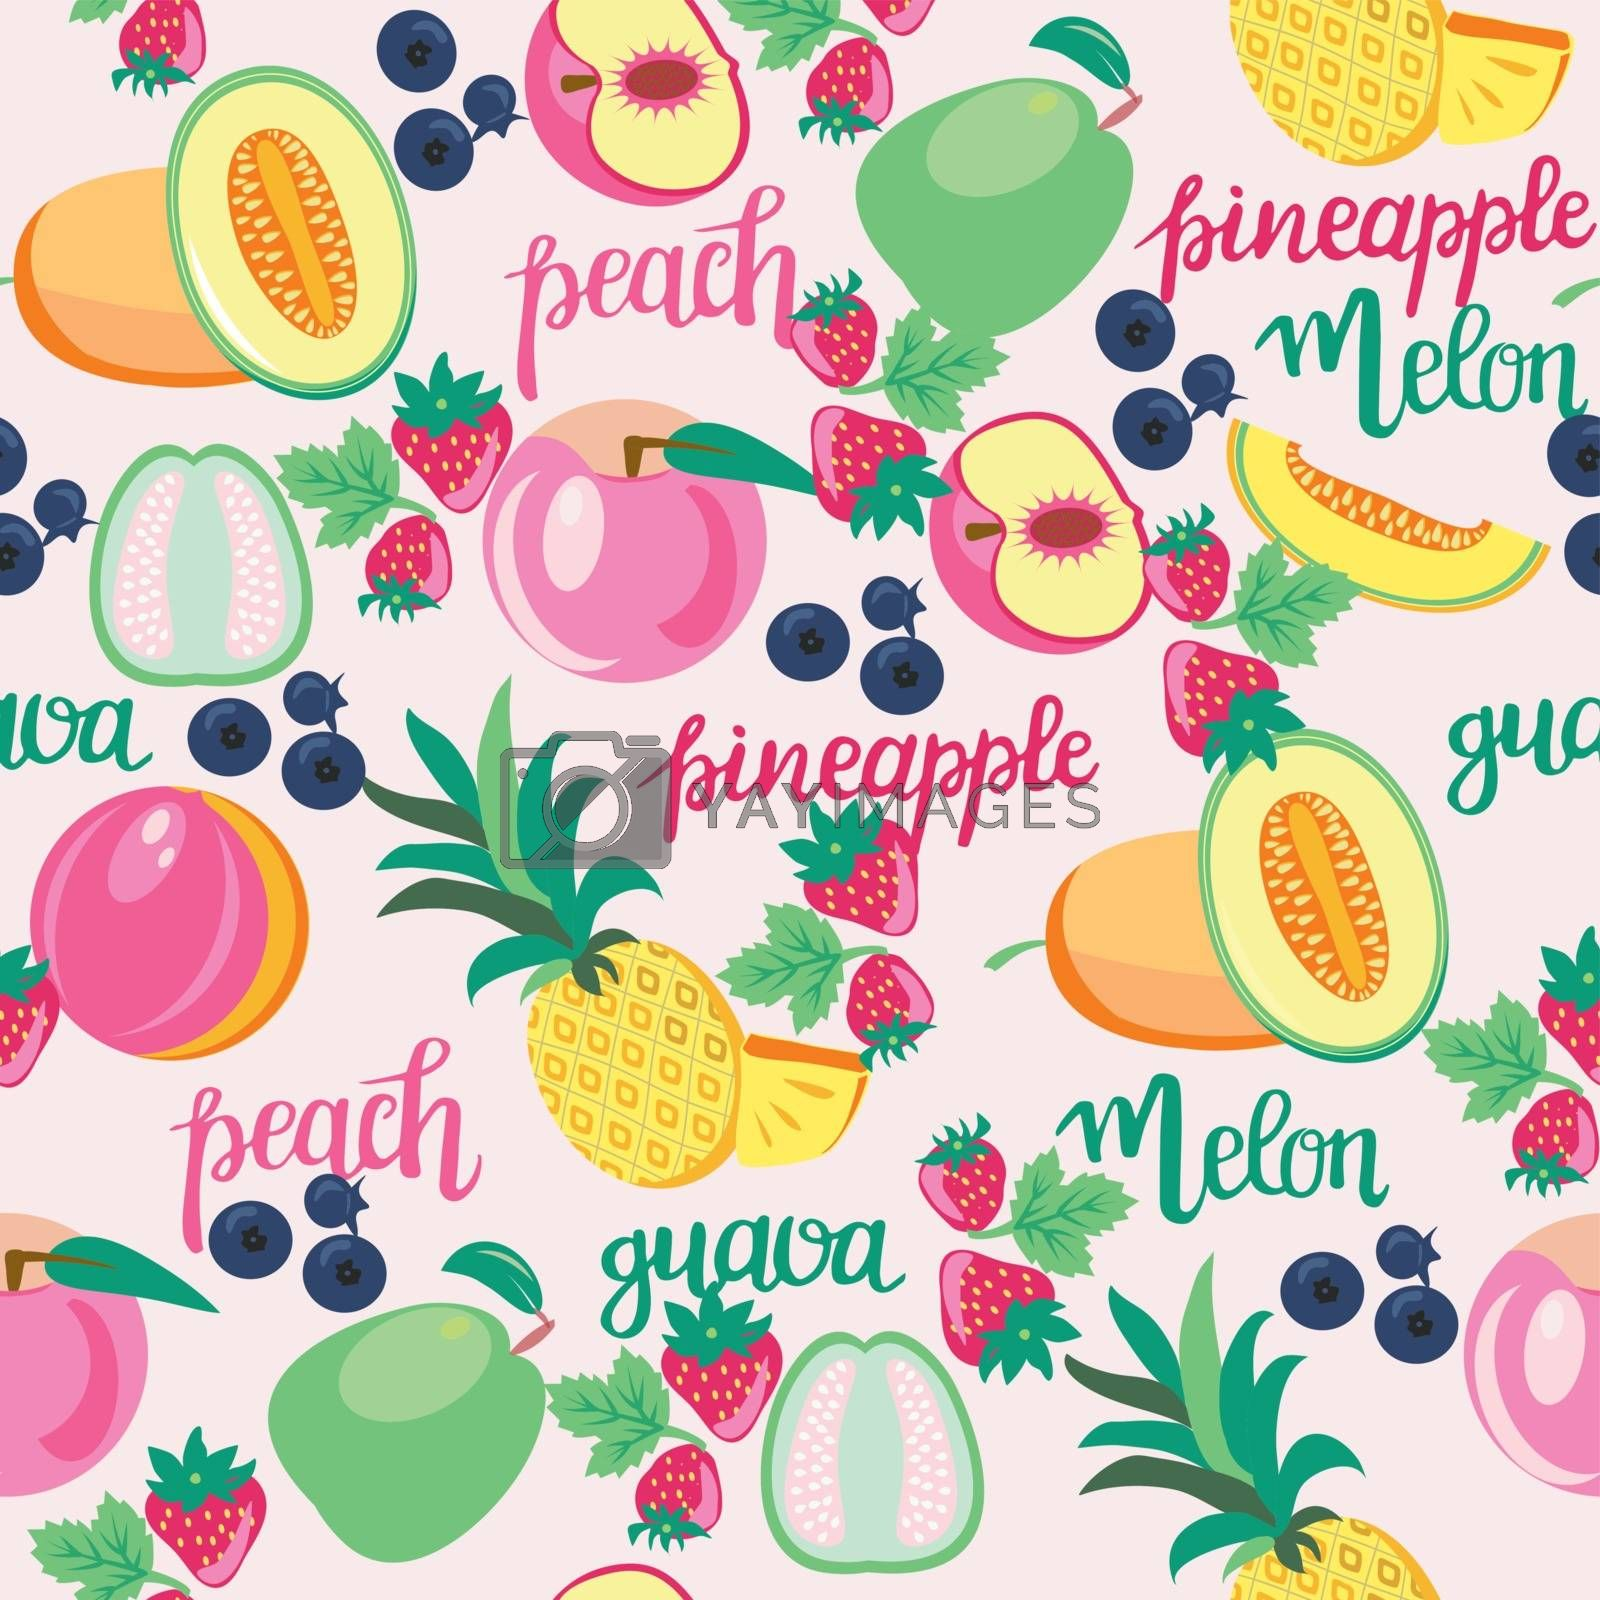 pattern with fruits peach, guava, melon, pineapple and strawberr by Margolana